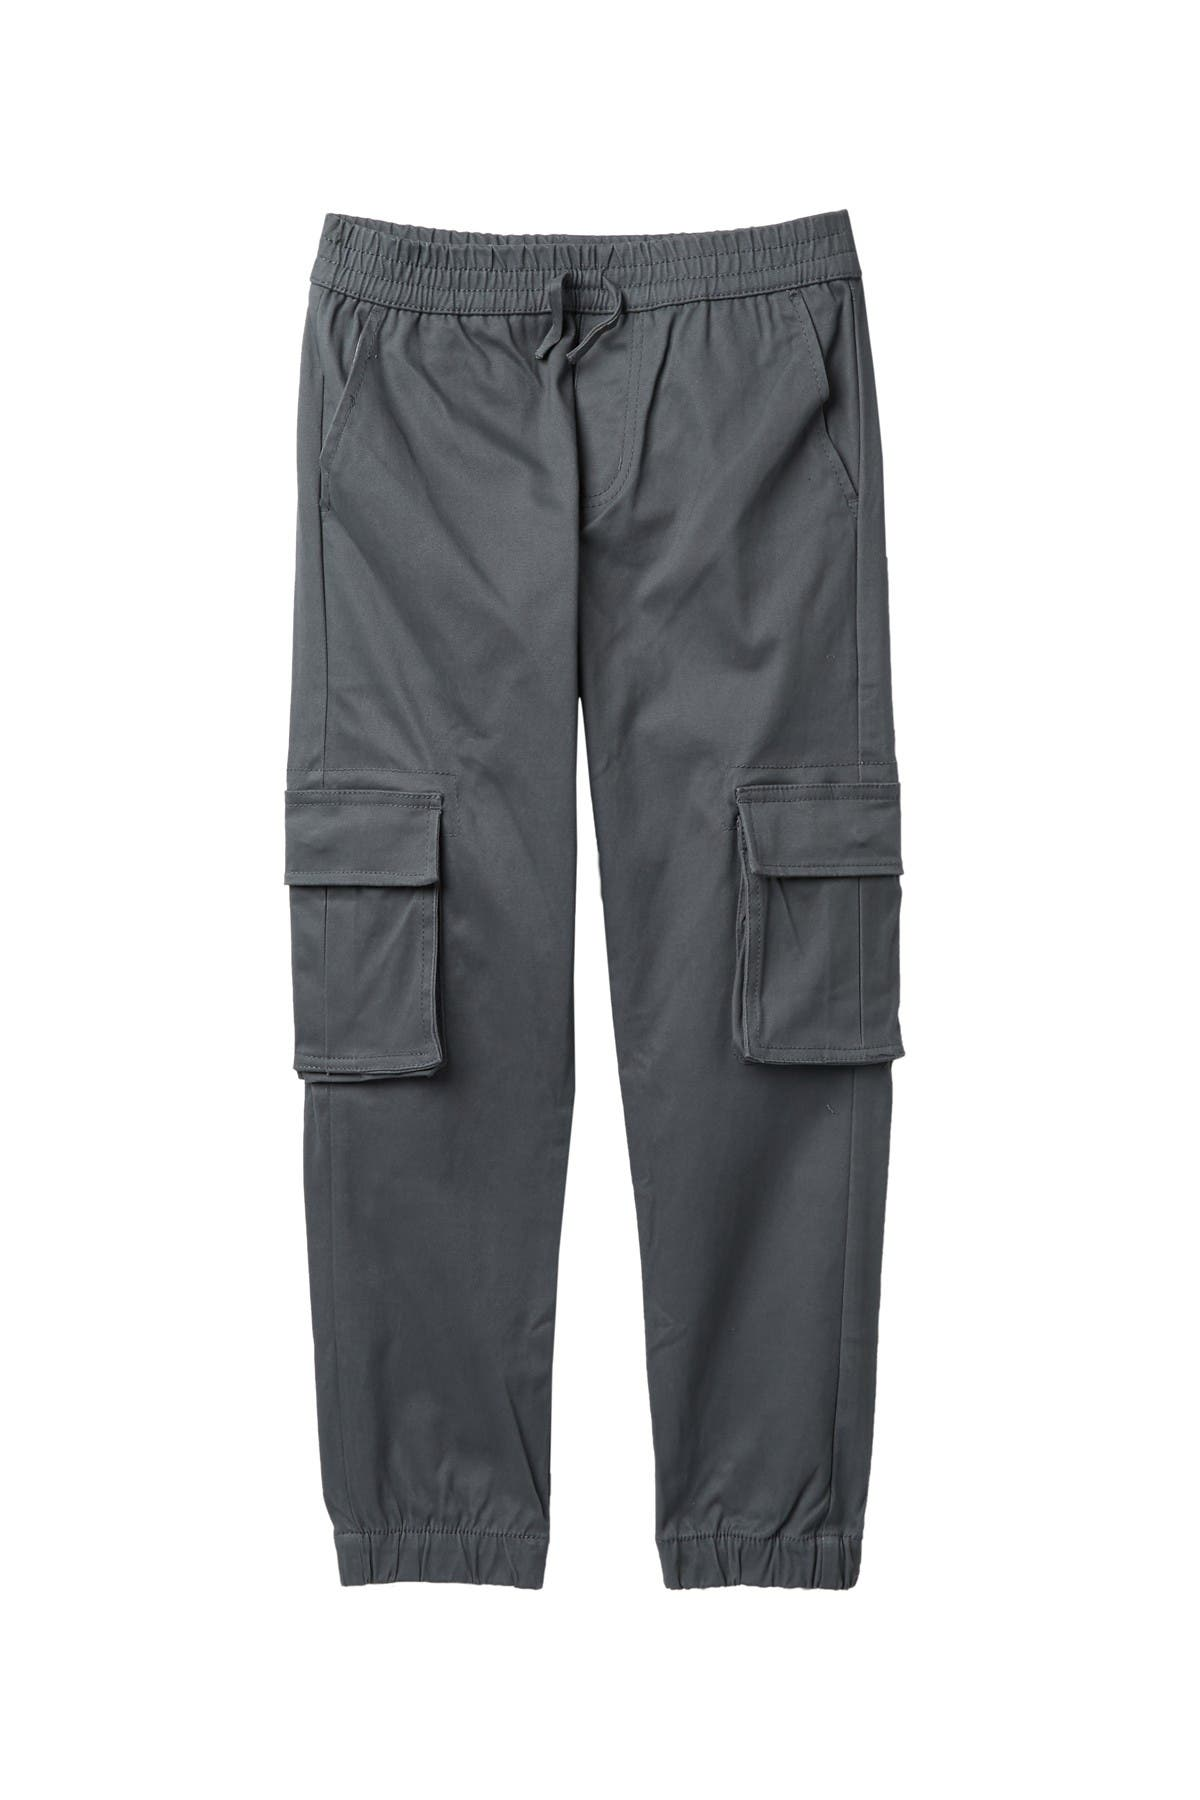 Image of HUDSON Jeans Cargo Joggers